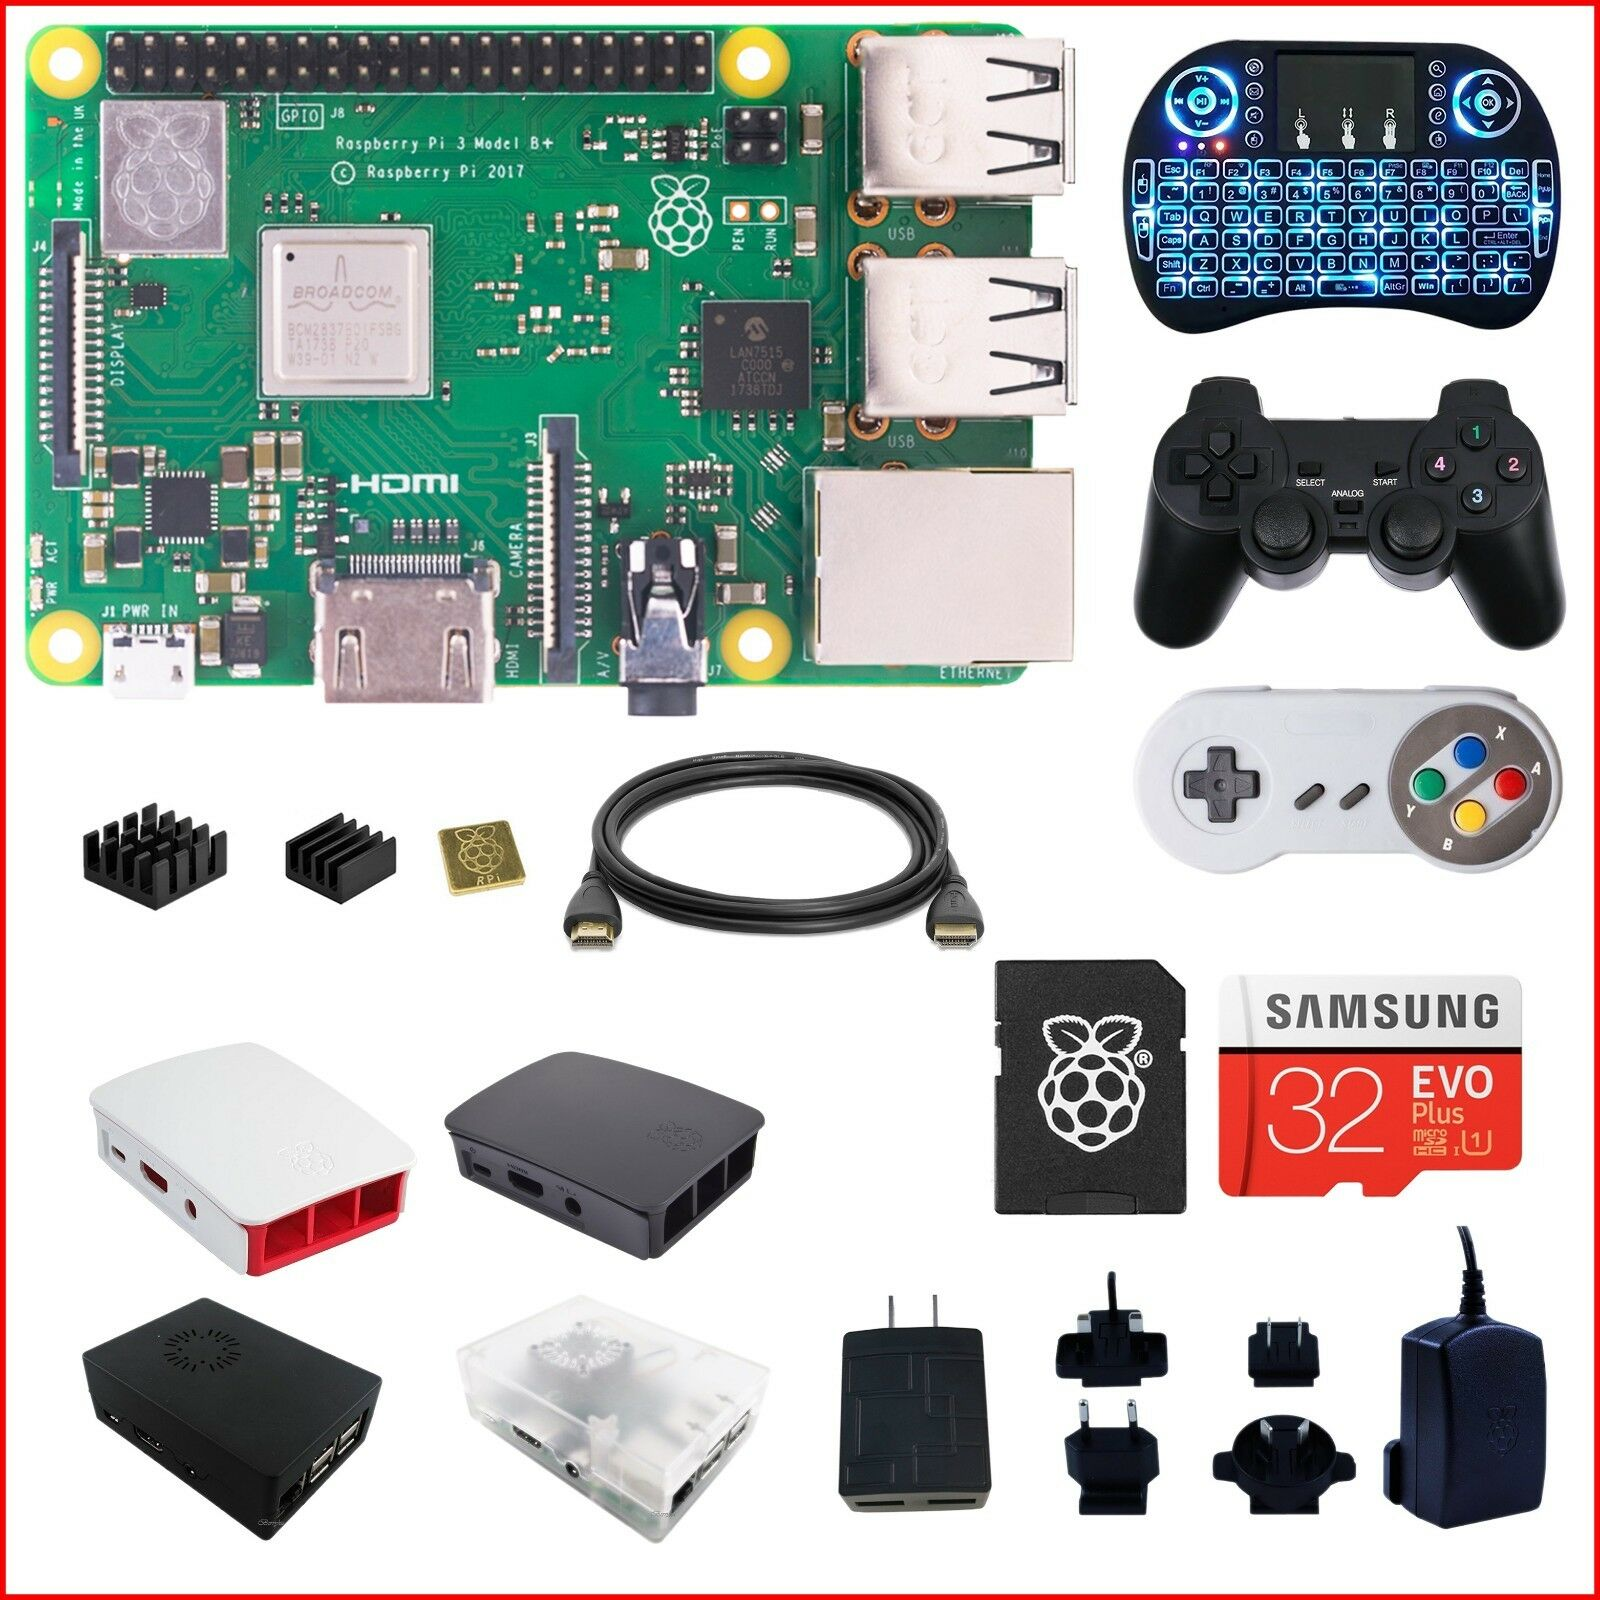 Купить Raspberry Pi RPI3BP-DIY-BLK - Berryku Raspberry Pi 3 B+ (B Plus) DIY Kit - Black KODI RetroPie Minecraft